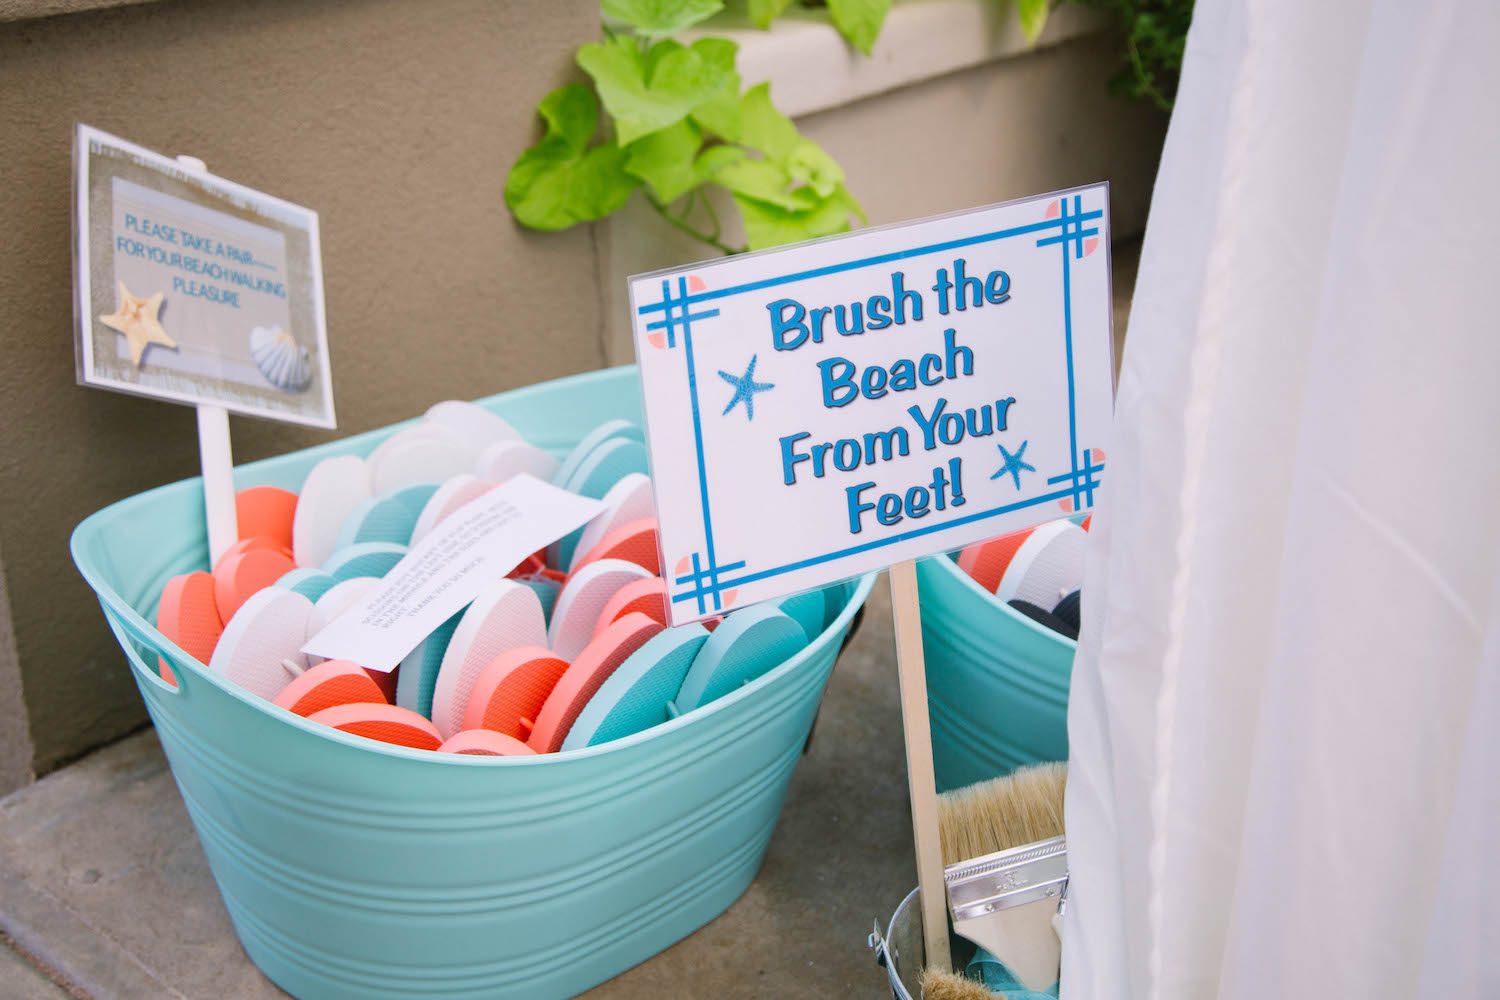 Love this idea for a beach wedding. 😍 Brush the beach from your feet!